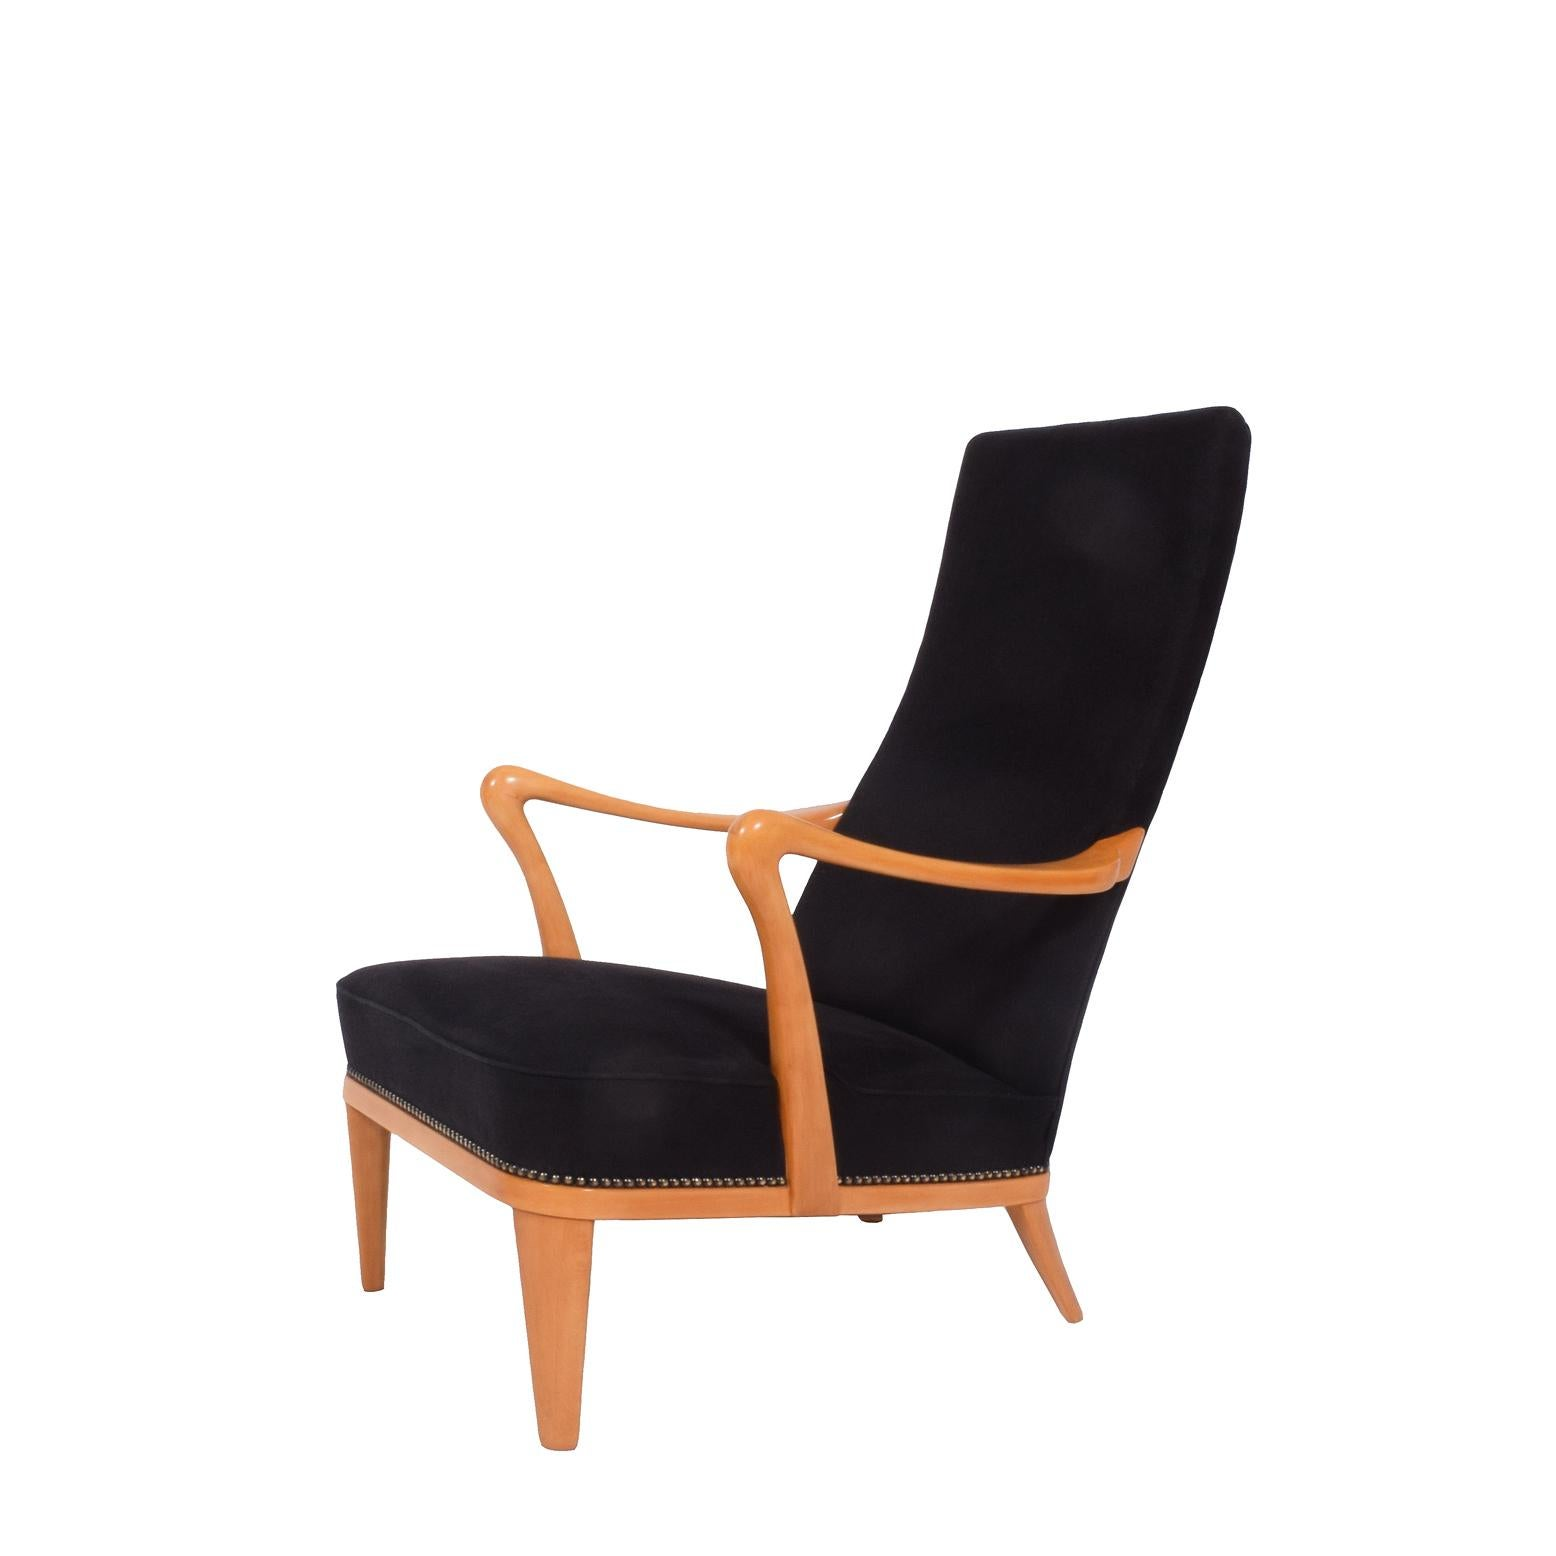 Swedish 1940s Easy Chair By Carl-Axel Acking